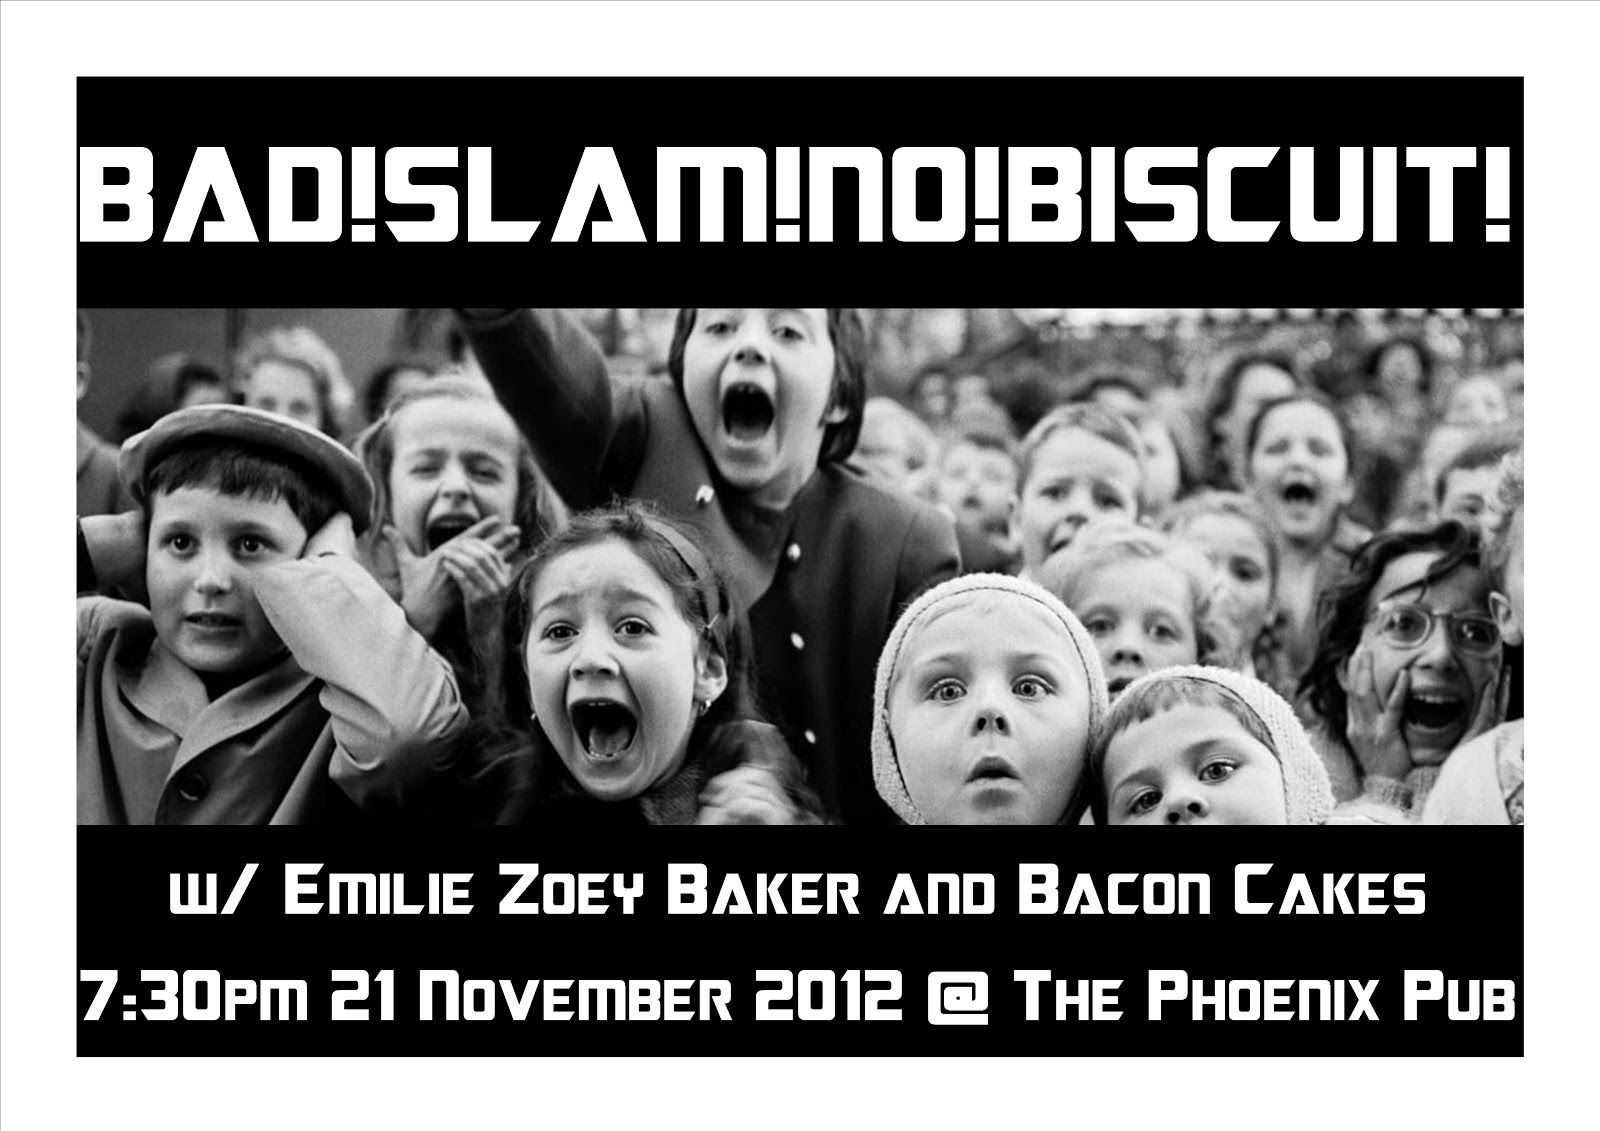 BAD!SLAM!NO!BISCUIT! 21 November at The Phoenix